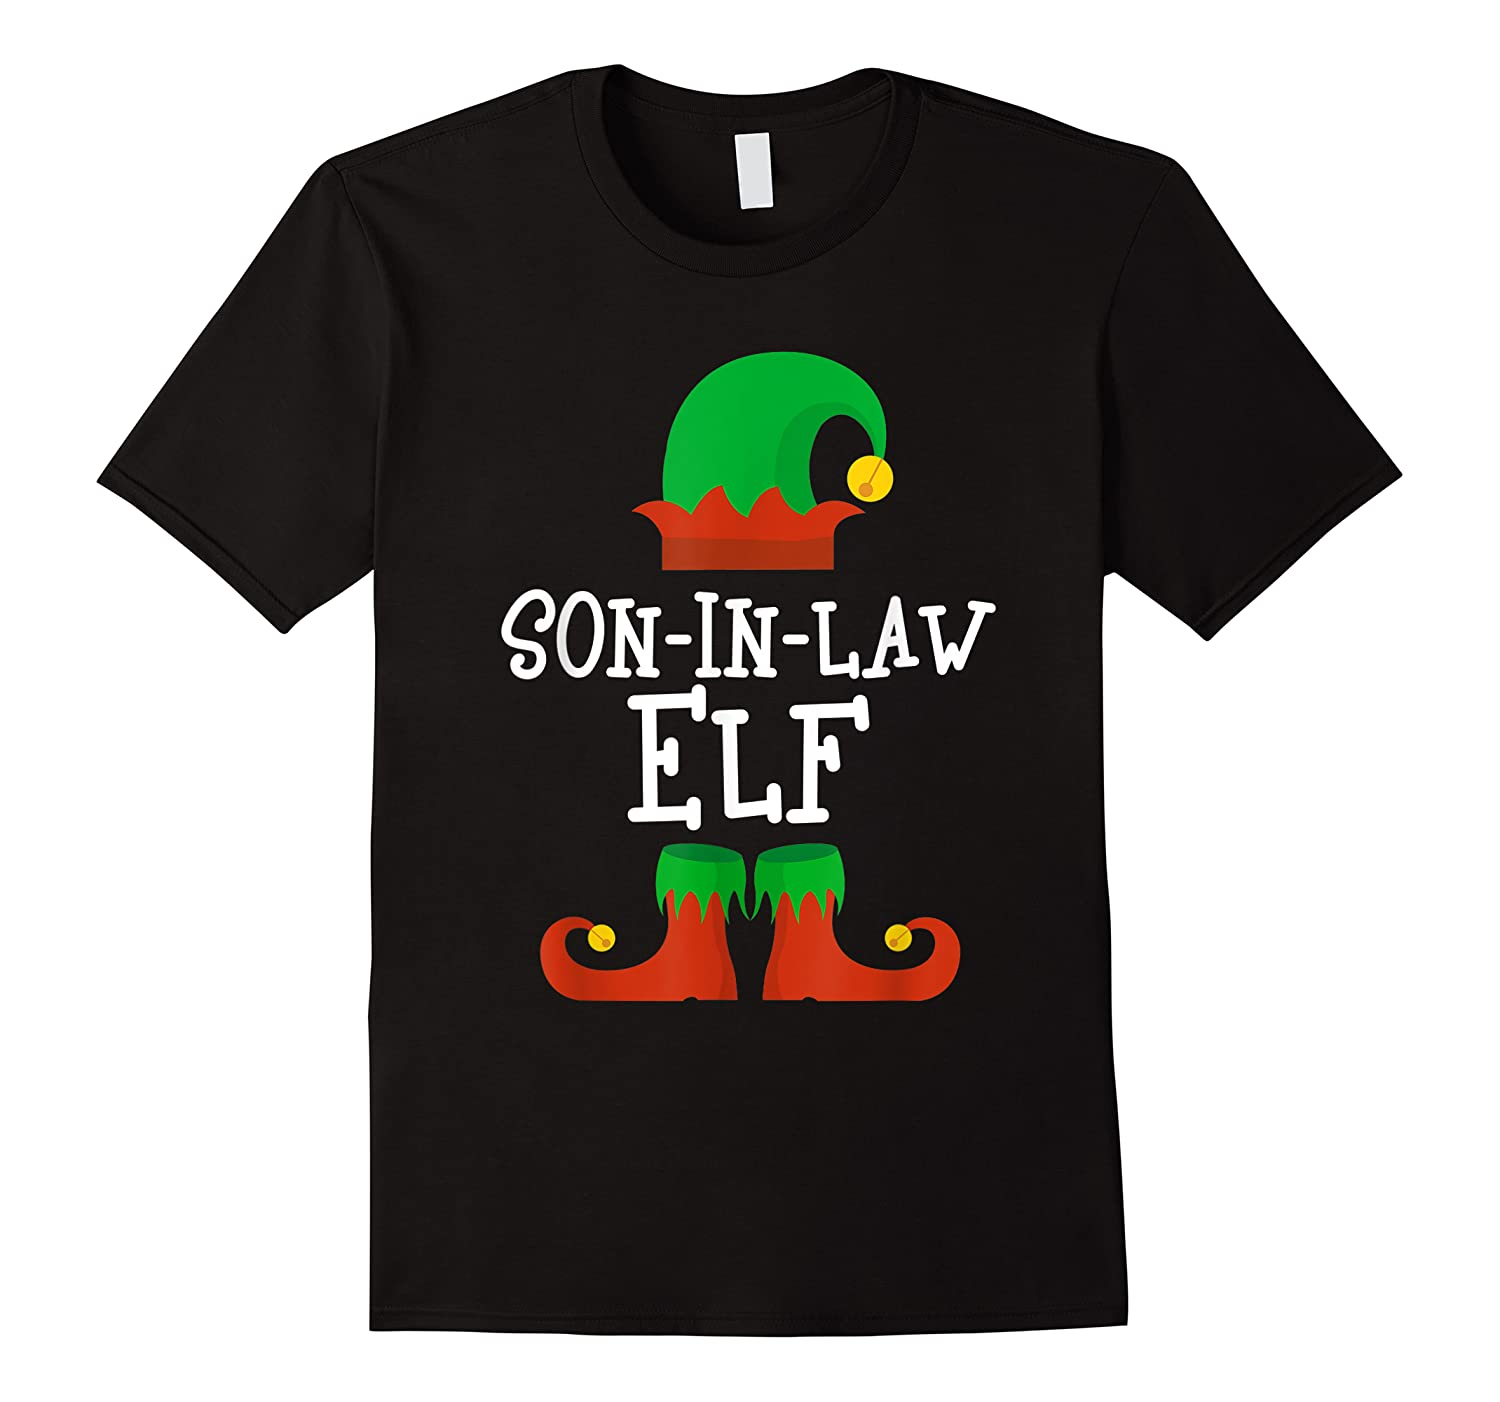 Son-in-law Elf Christmas Funny T-shirt